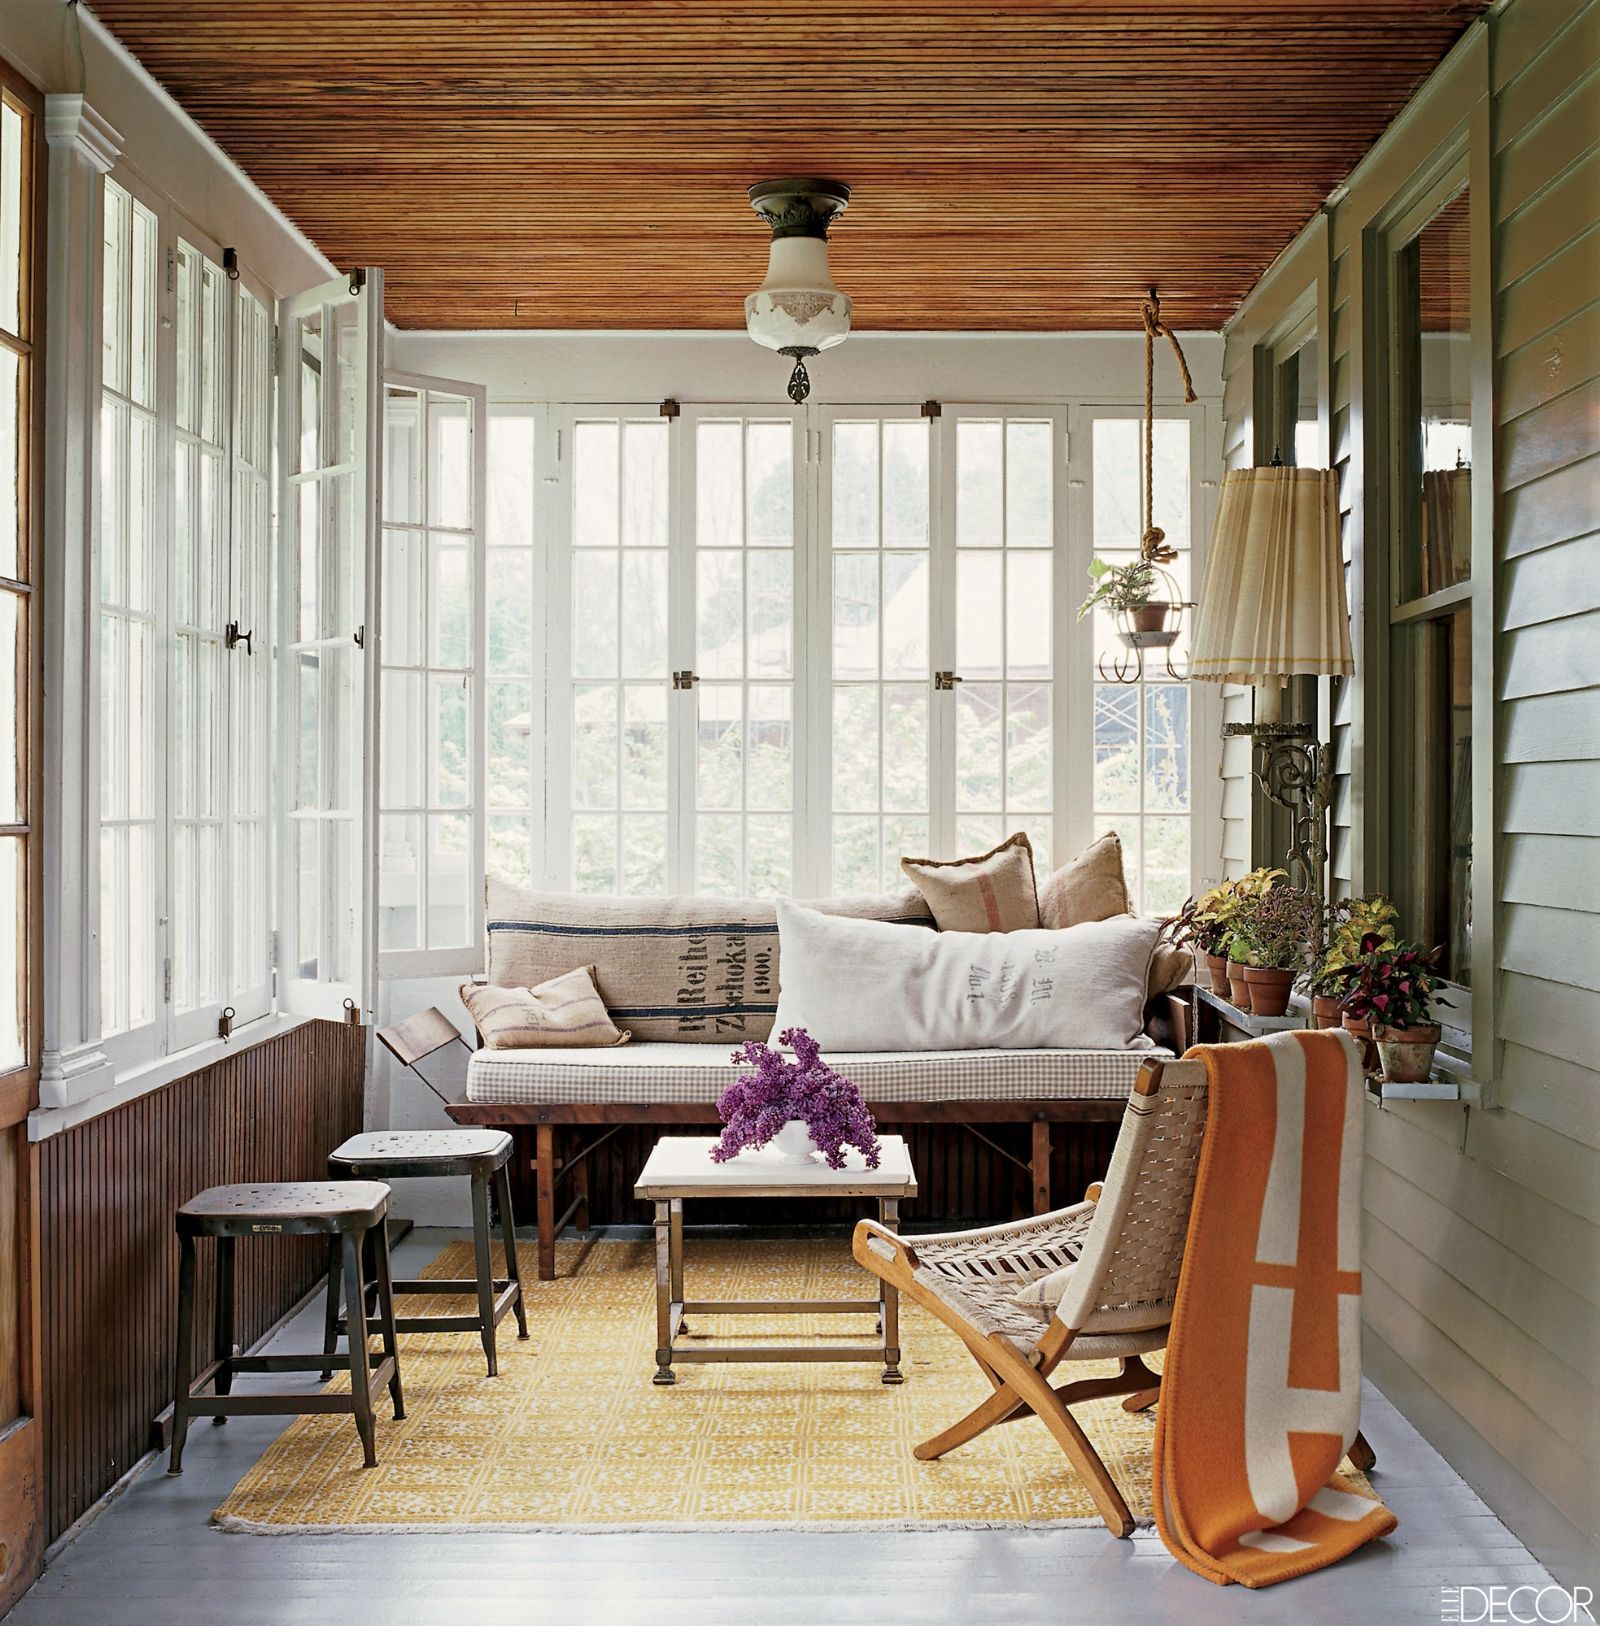 Perfect 18 Bright And Breezy Sunrooms To While Away The Summer